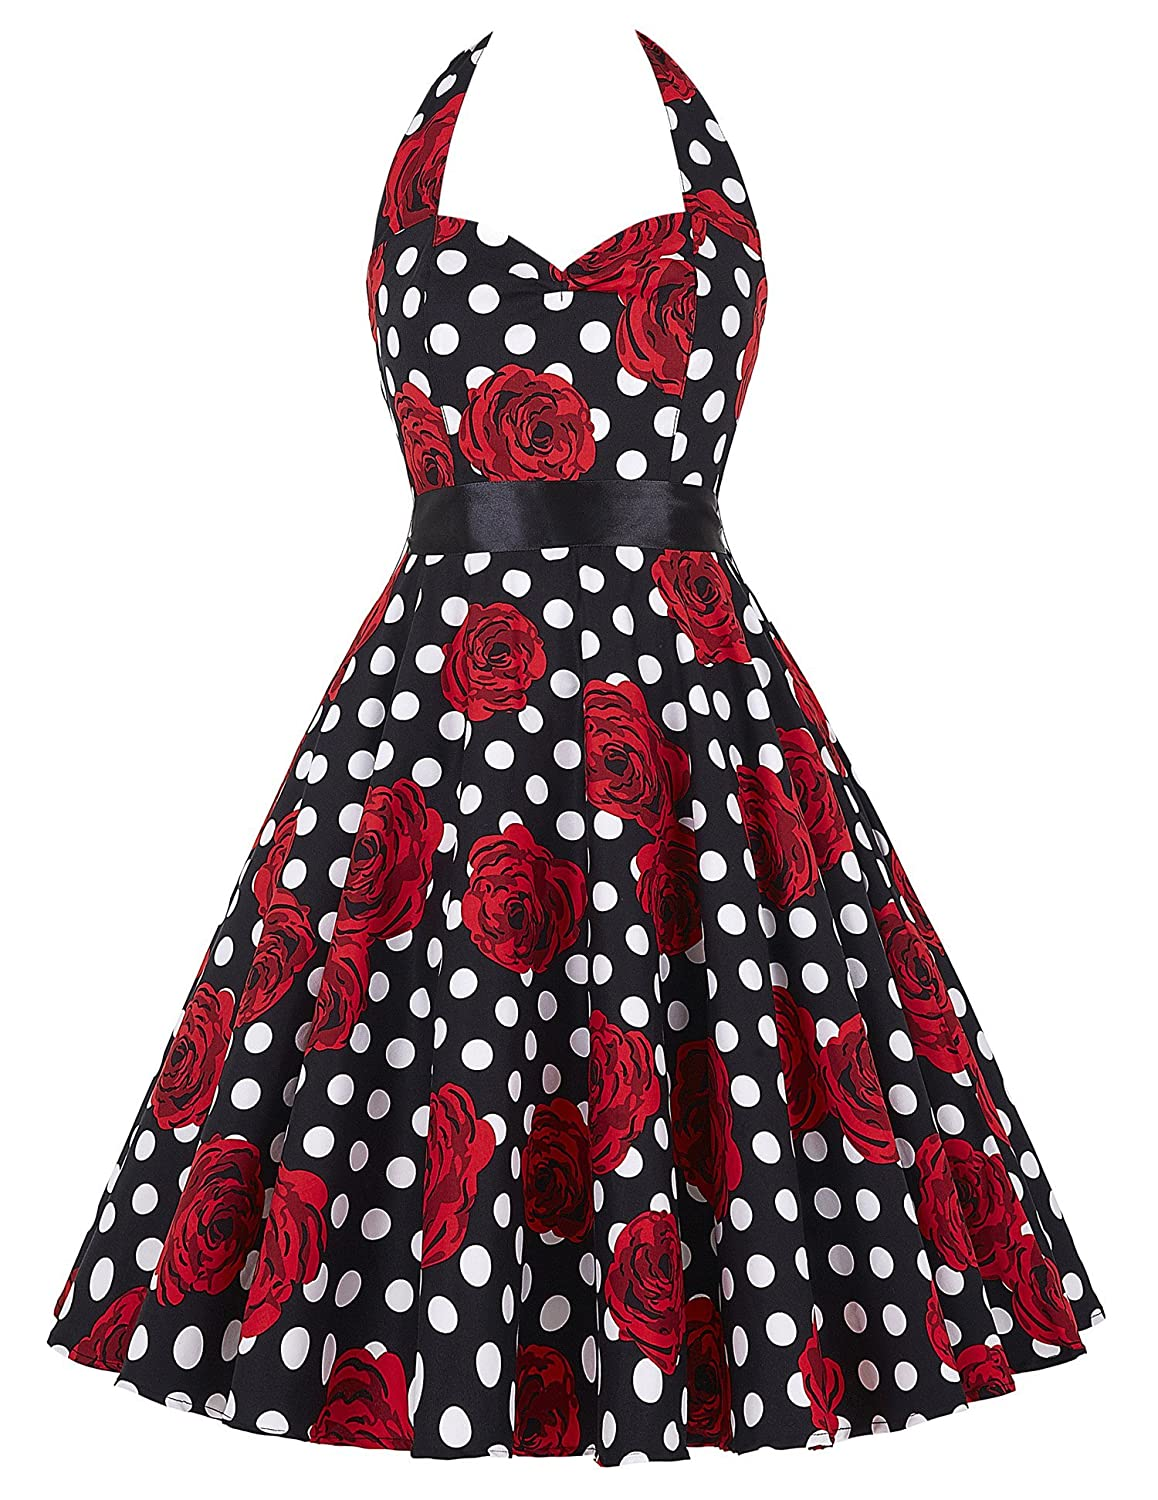 GRACE KARIN Women Vintage 1950s Polka Dots Rockabilly Dress with ...